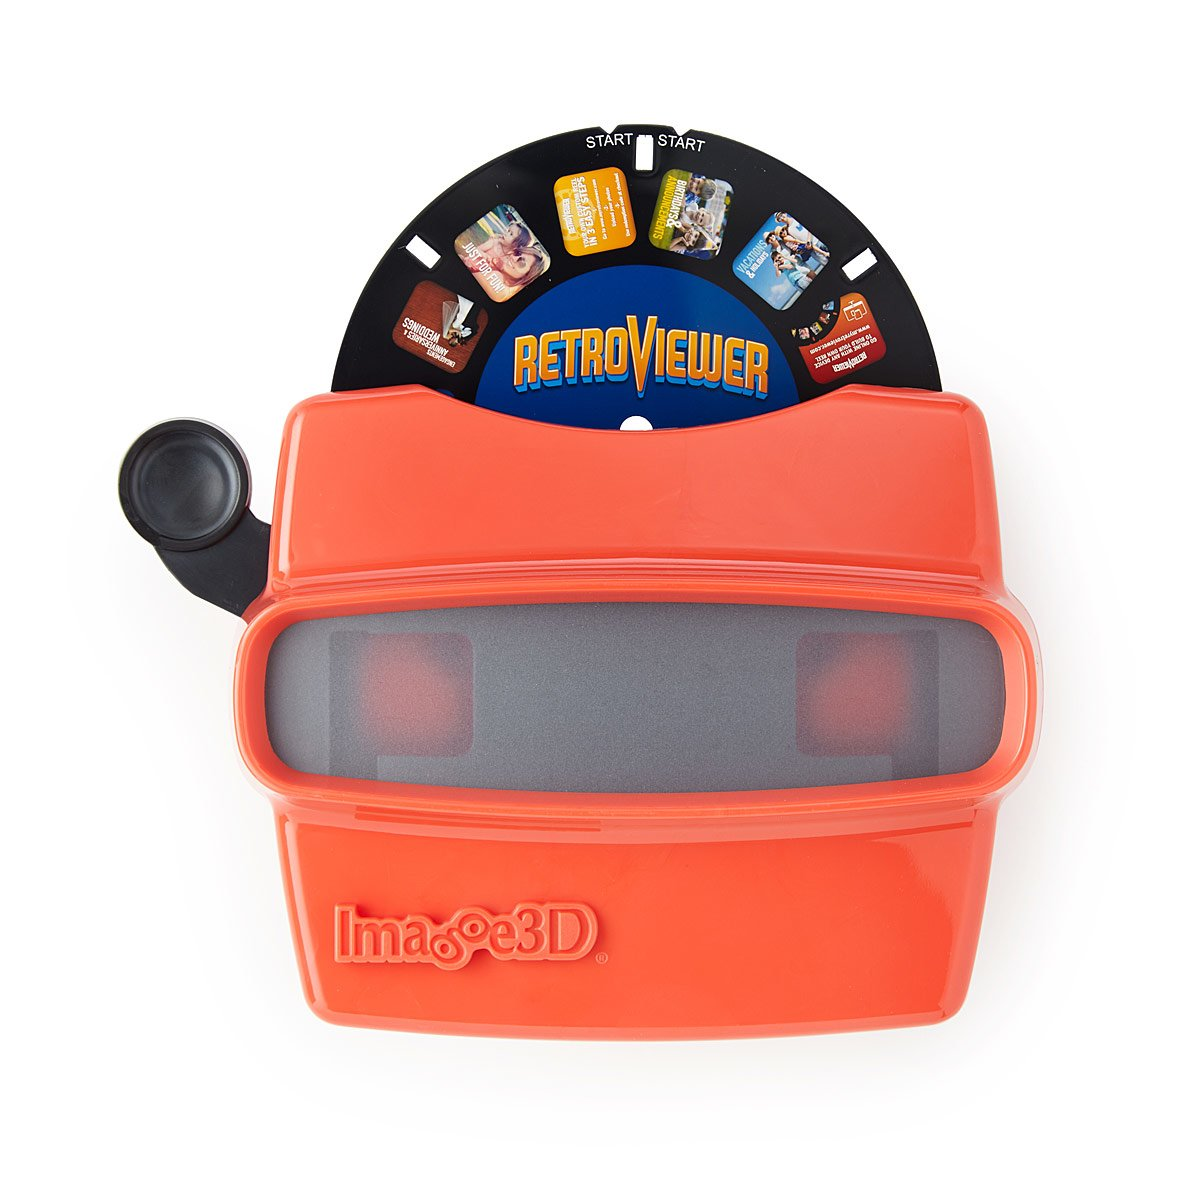 Creative photo gifts for Father's Day: Personalized View Master | Uncommon Goods